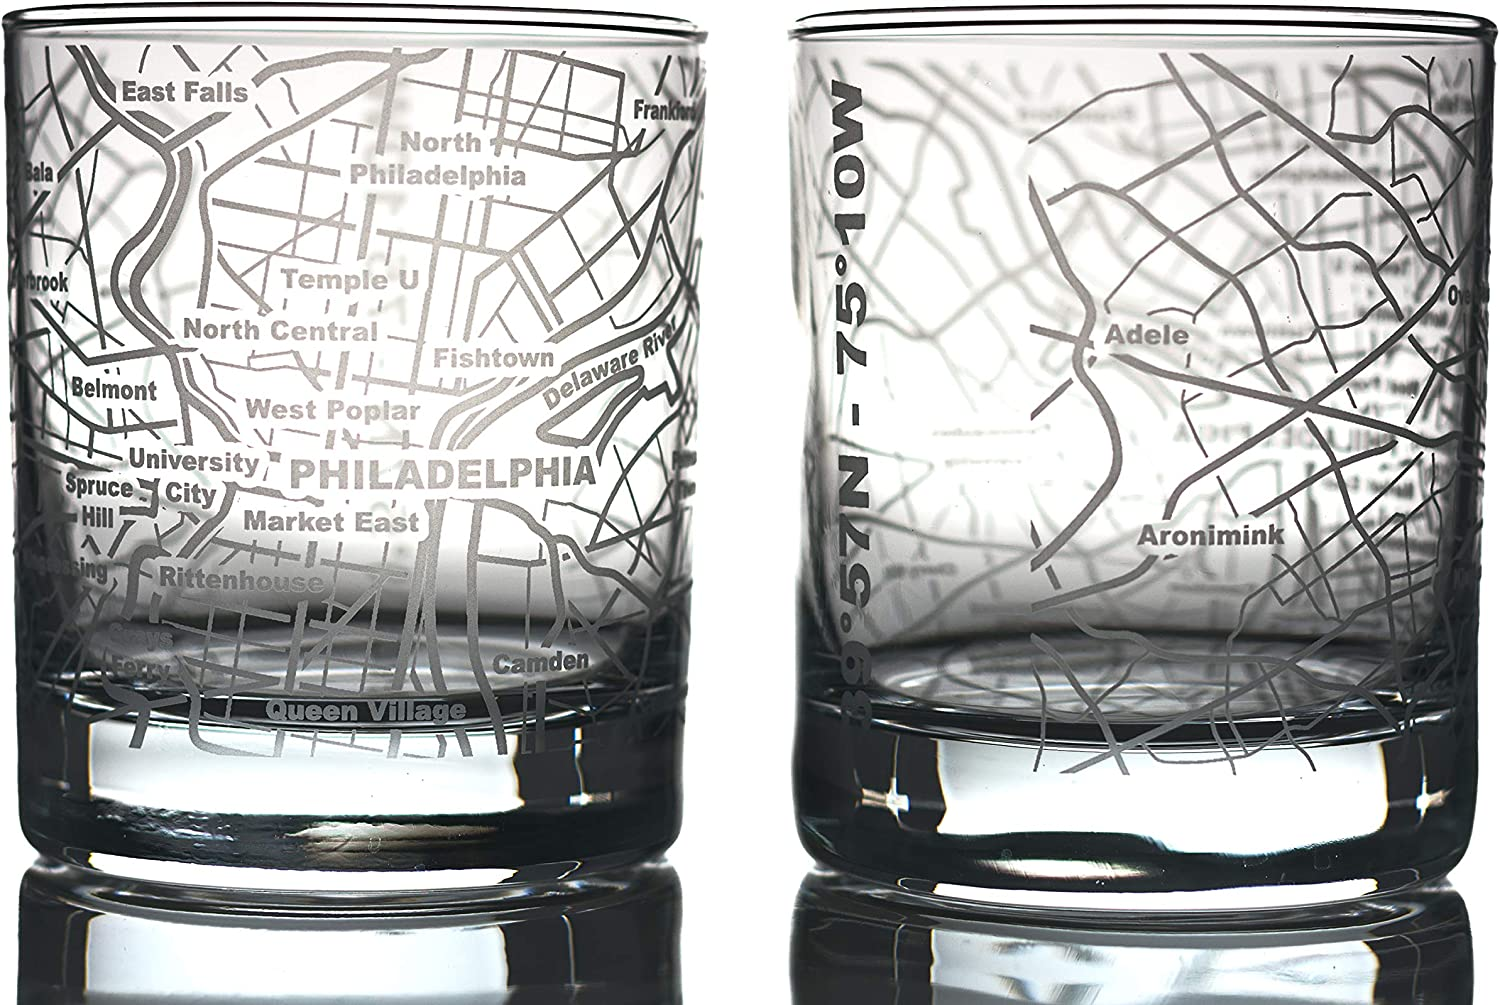 Greenline Goods Whiskey Glasses - 10 Oz Tumbler Gift Set for Philadelphia lovers, Etched with Philadelphia Map | Old Fashioned Rocks Glass - Set of 2